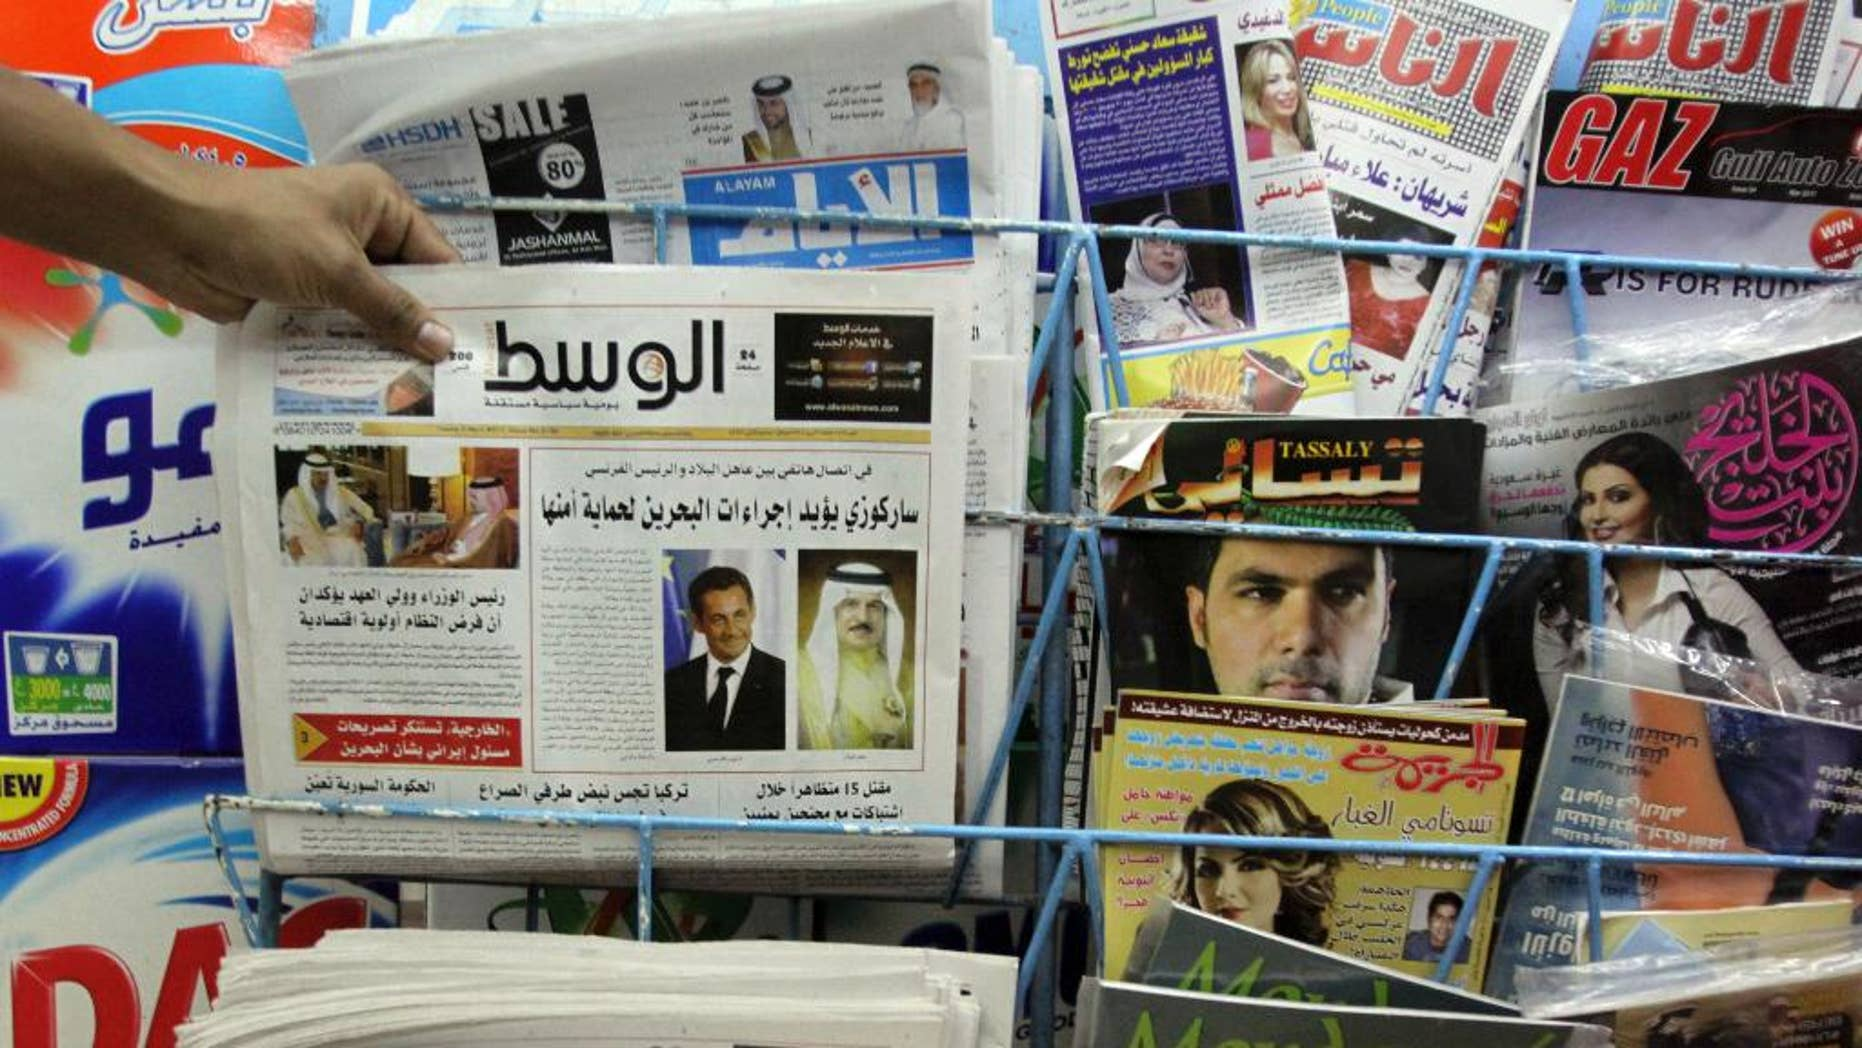 File - In this Tuesday, April 5, 2011, file photo, a man picks up a copy of Al Wasat newspaper at a newsstand in Hamad Town, Bahrain. Bahraini authorities have ordered the independent newspaper to stop publishing online Monday and say a city hall was set ablaze during clashes between opposition protesters and police. The suspension of Al-Wasat's online operations followed a spike in anti-government protests led by the country's Shiite majority that began Saturday.  (AP Photo/Hasan Jamali, File)